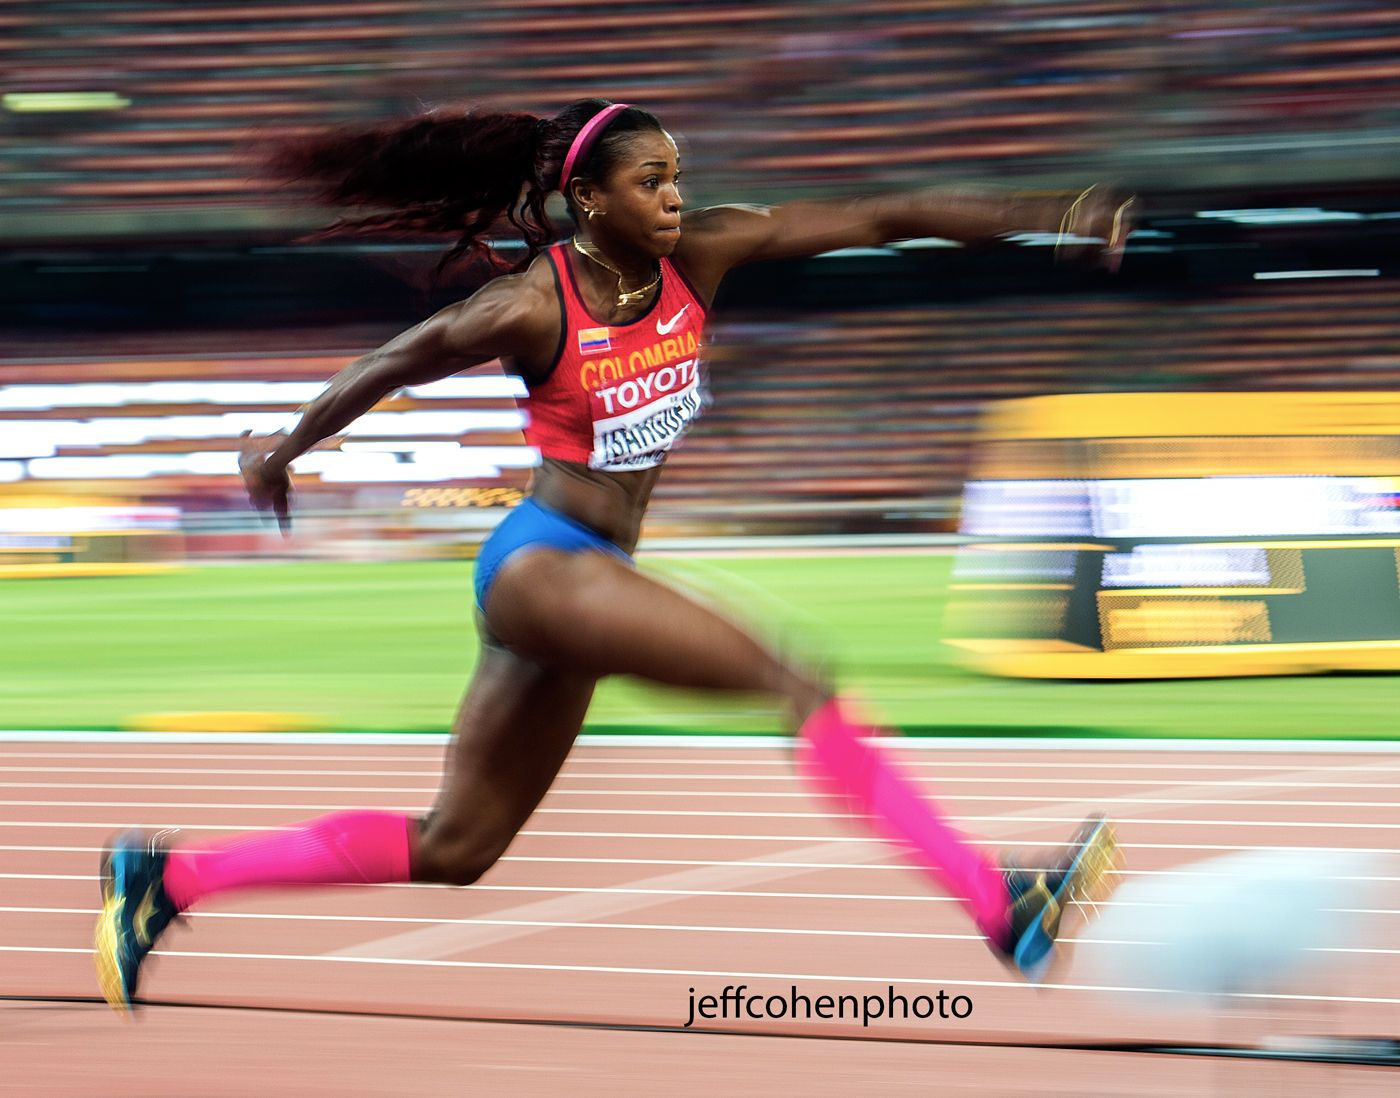 1beijing2015_night_3_imbarguen_tjw_final_jeff_cohen_photo_12833_web.jpg